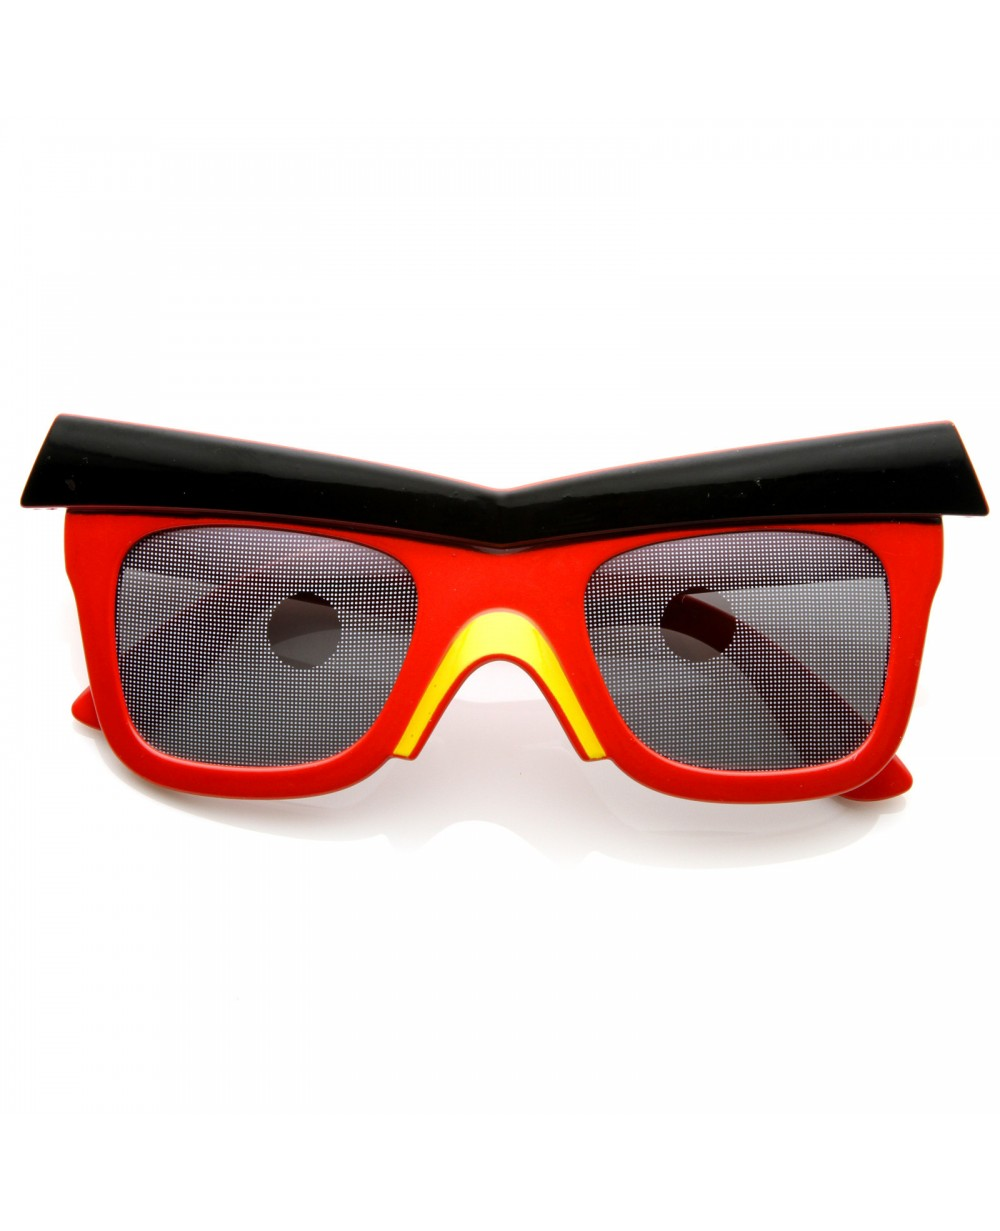 Beak-Sunglasses 12 Most Unusual Sunglasses Ever